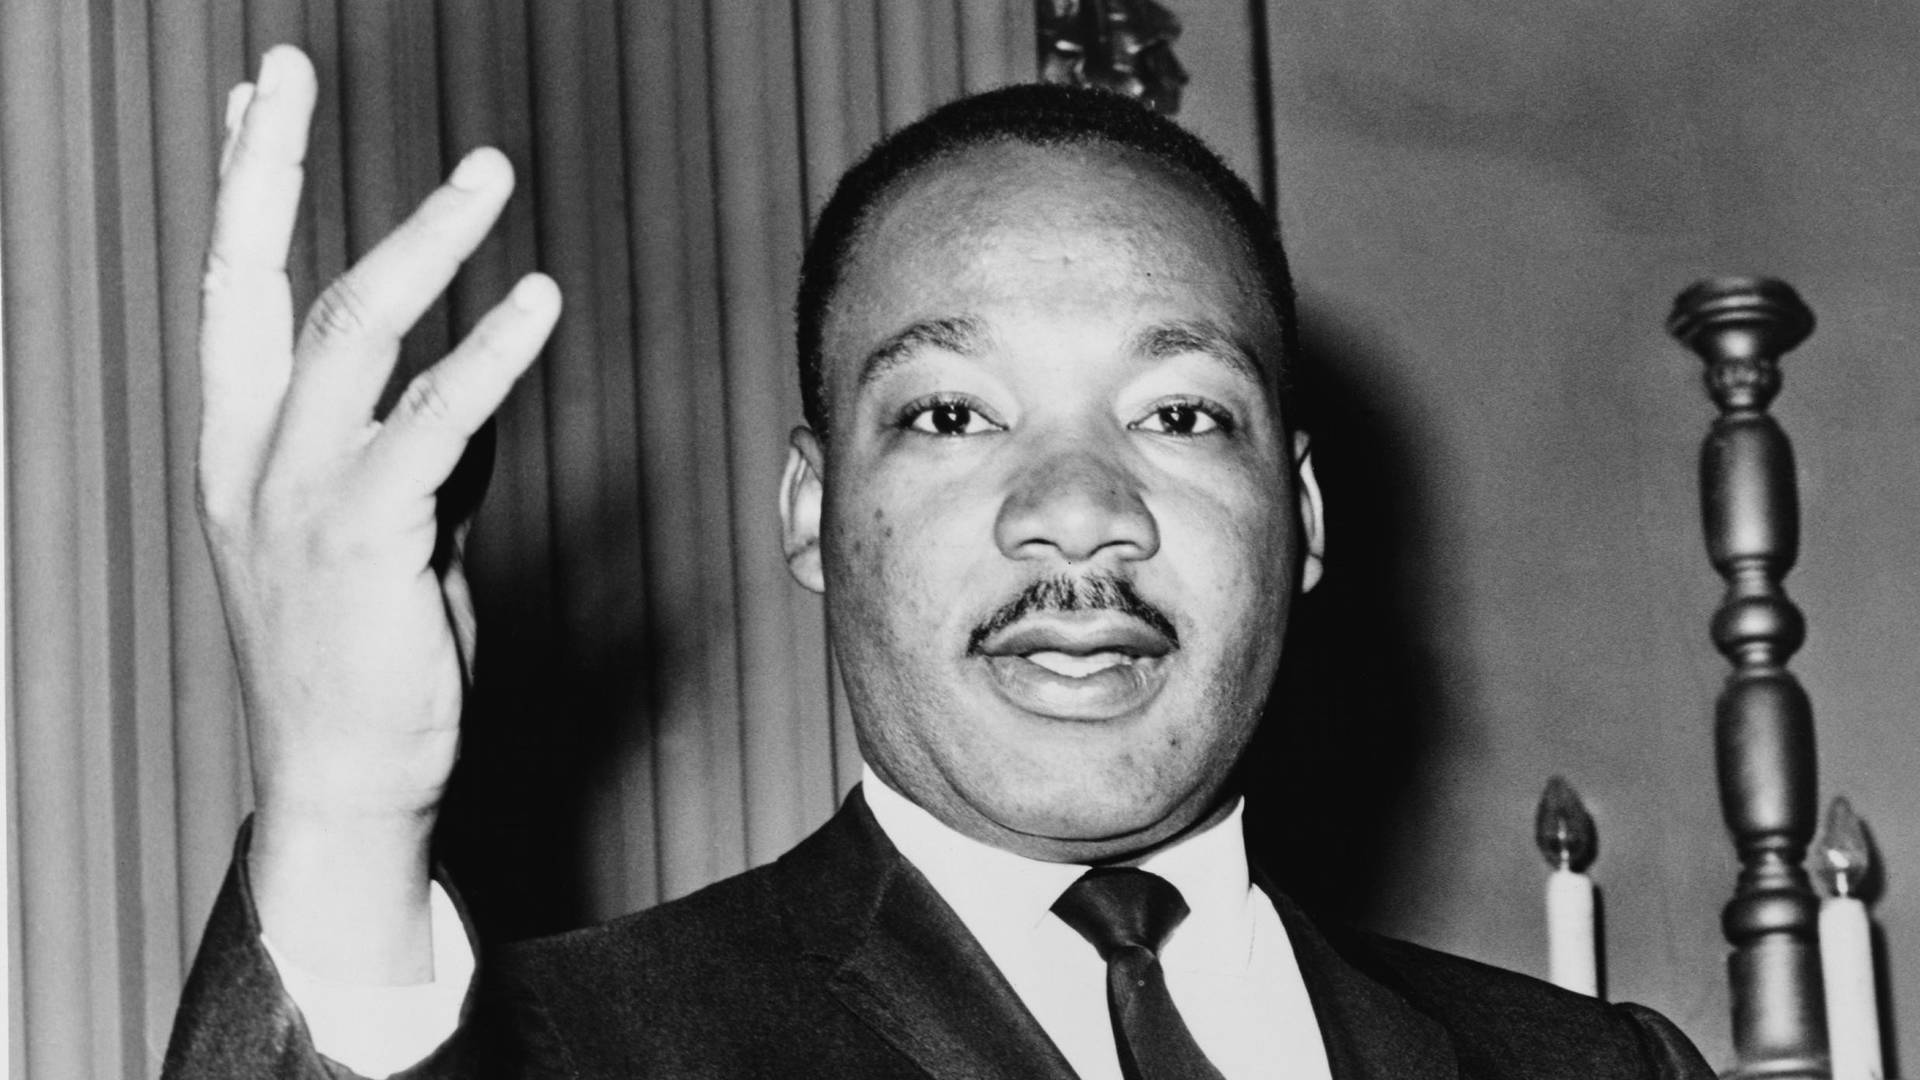 mlk rhetoric Ramon tuason as one of the most charismatic orators and leaders of the twentieth century, martin luther king led the civil rights movement to success, bringing an end to racial segregation in the united states.